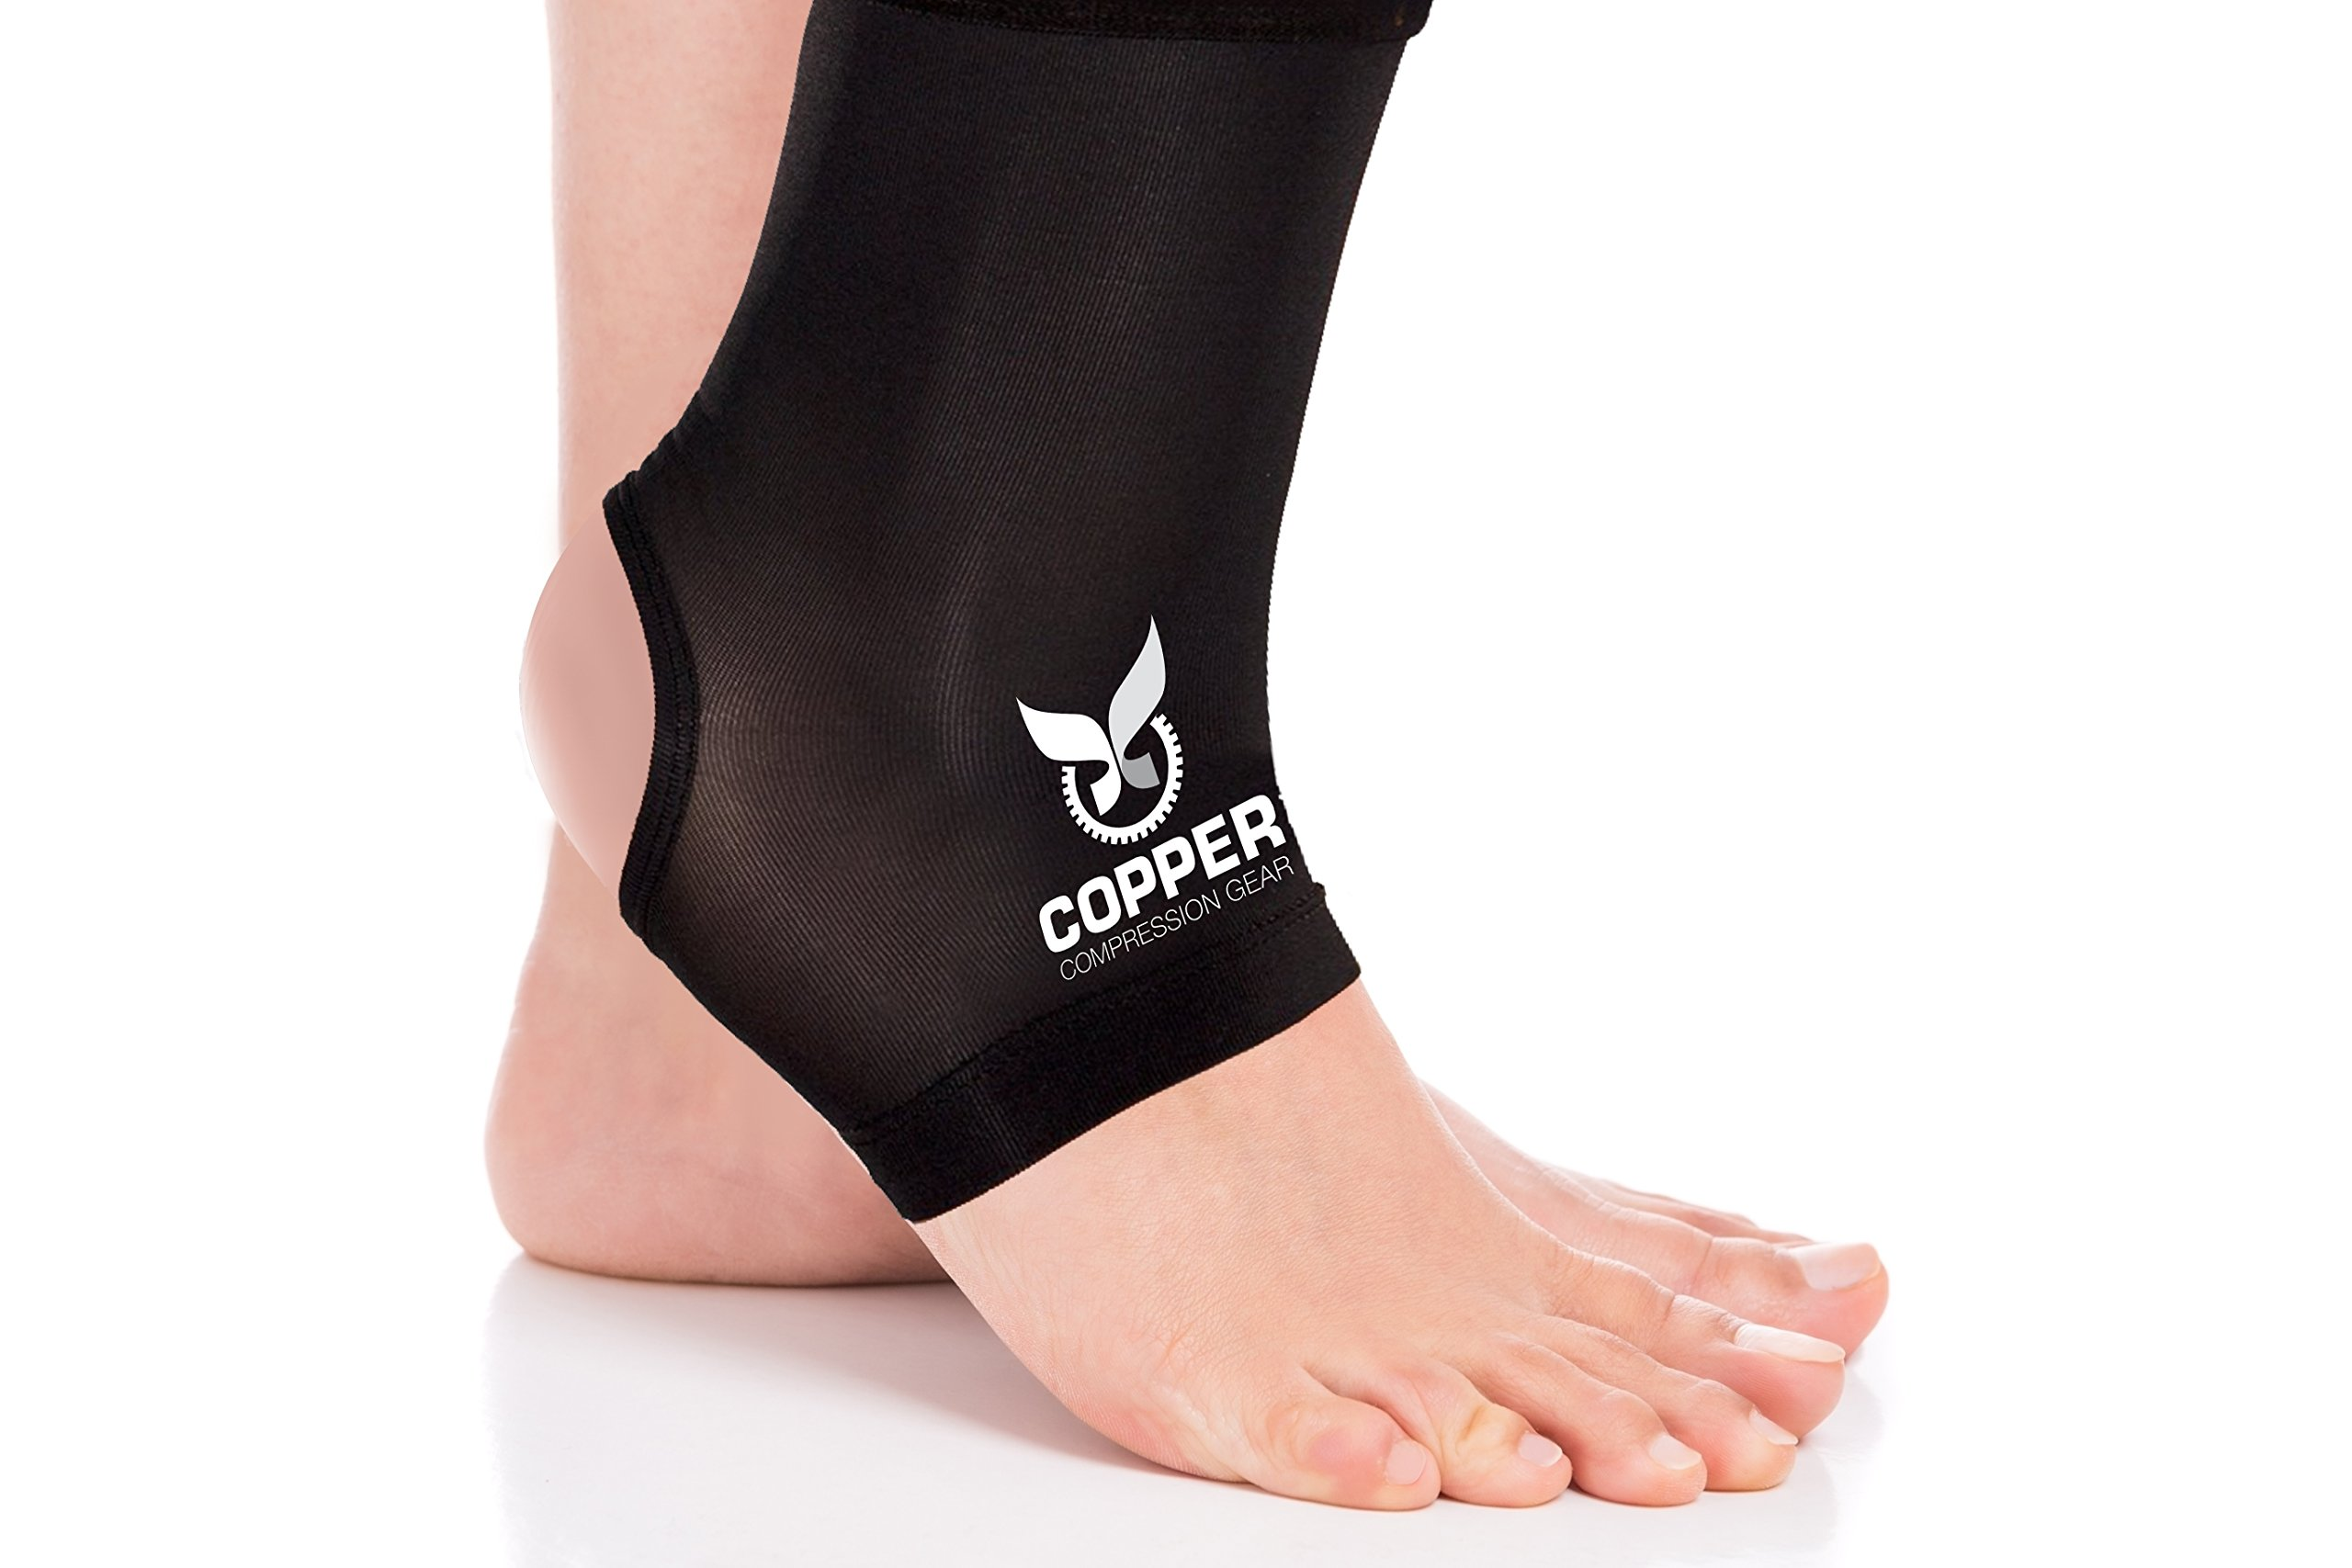 Copper Compression Gear PREMIUM Fit Recovery Ankle Sleeve - 100% GUARANTEED - #1 Ankle Brace/Support Sock/Wrap / Stabilizer For Men And Women